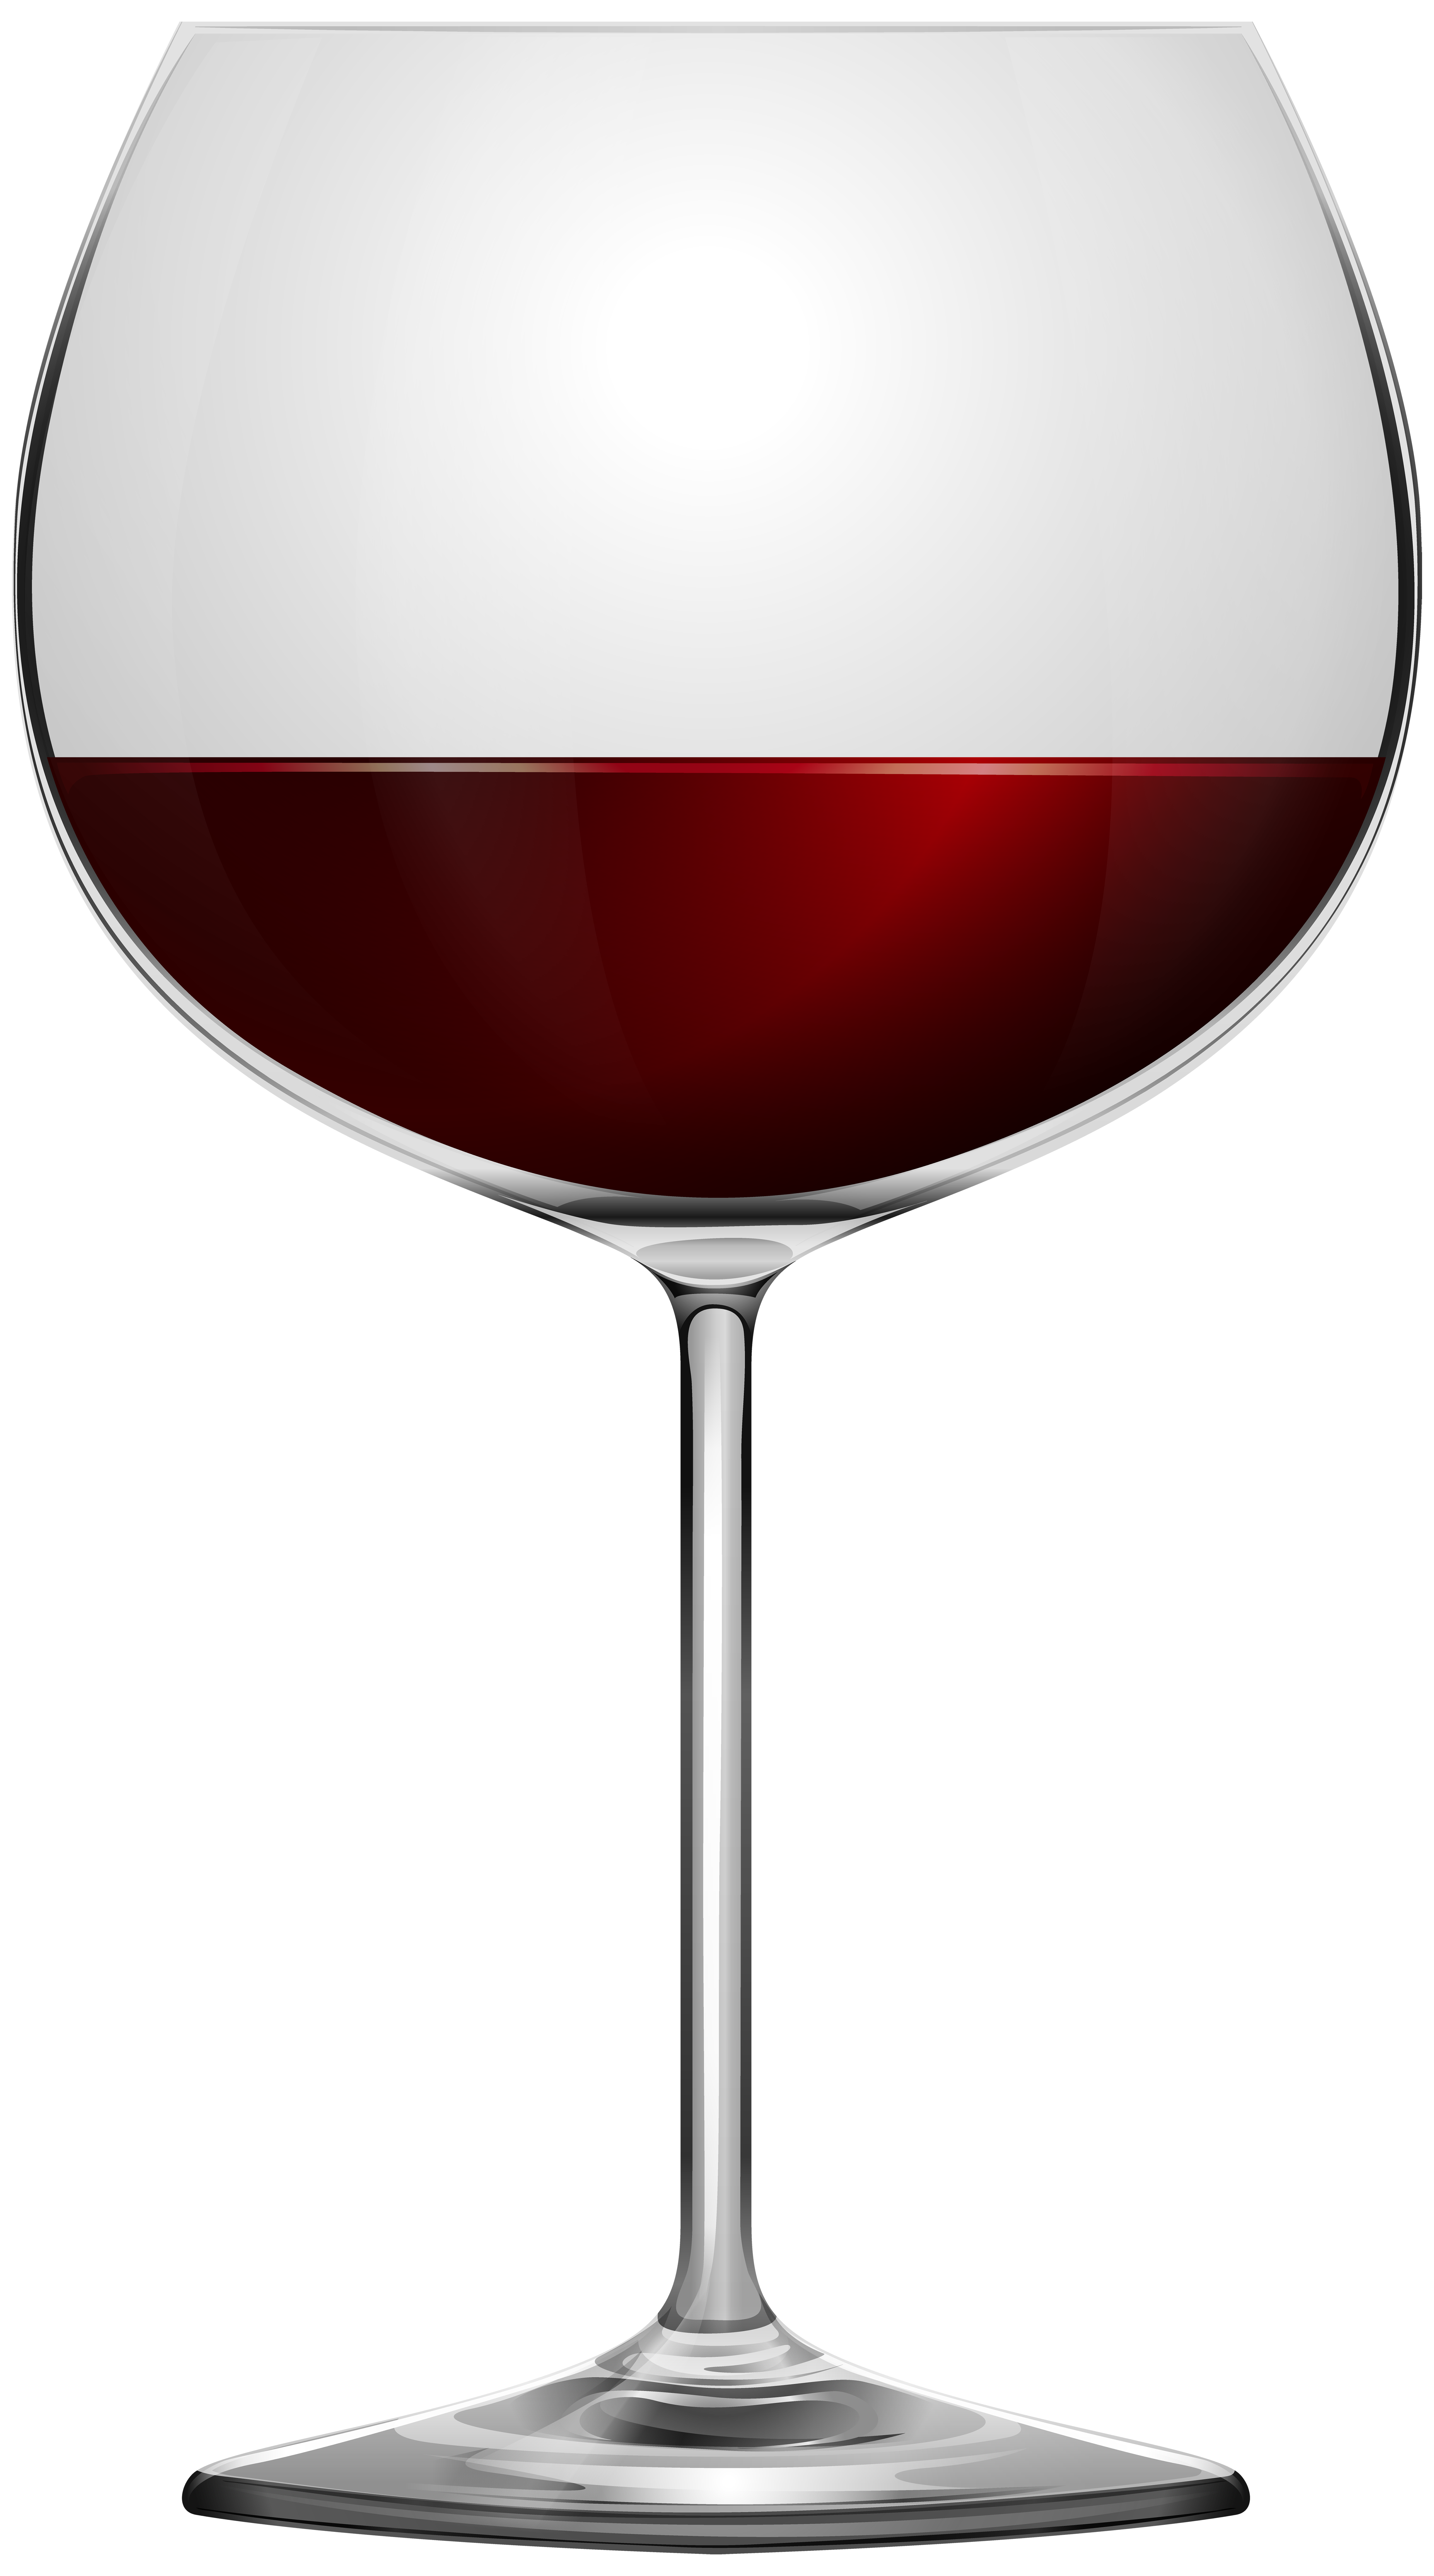 Halloween clipart wine. Red glass transparent png